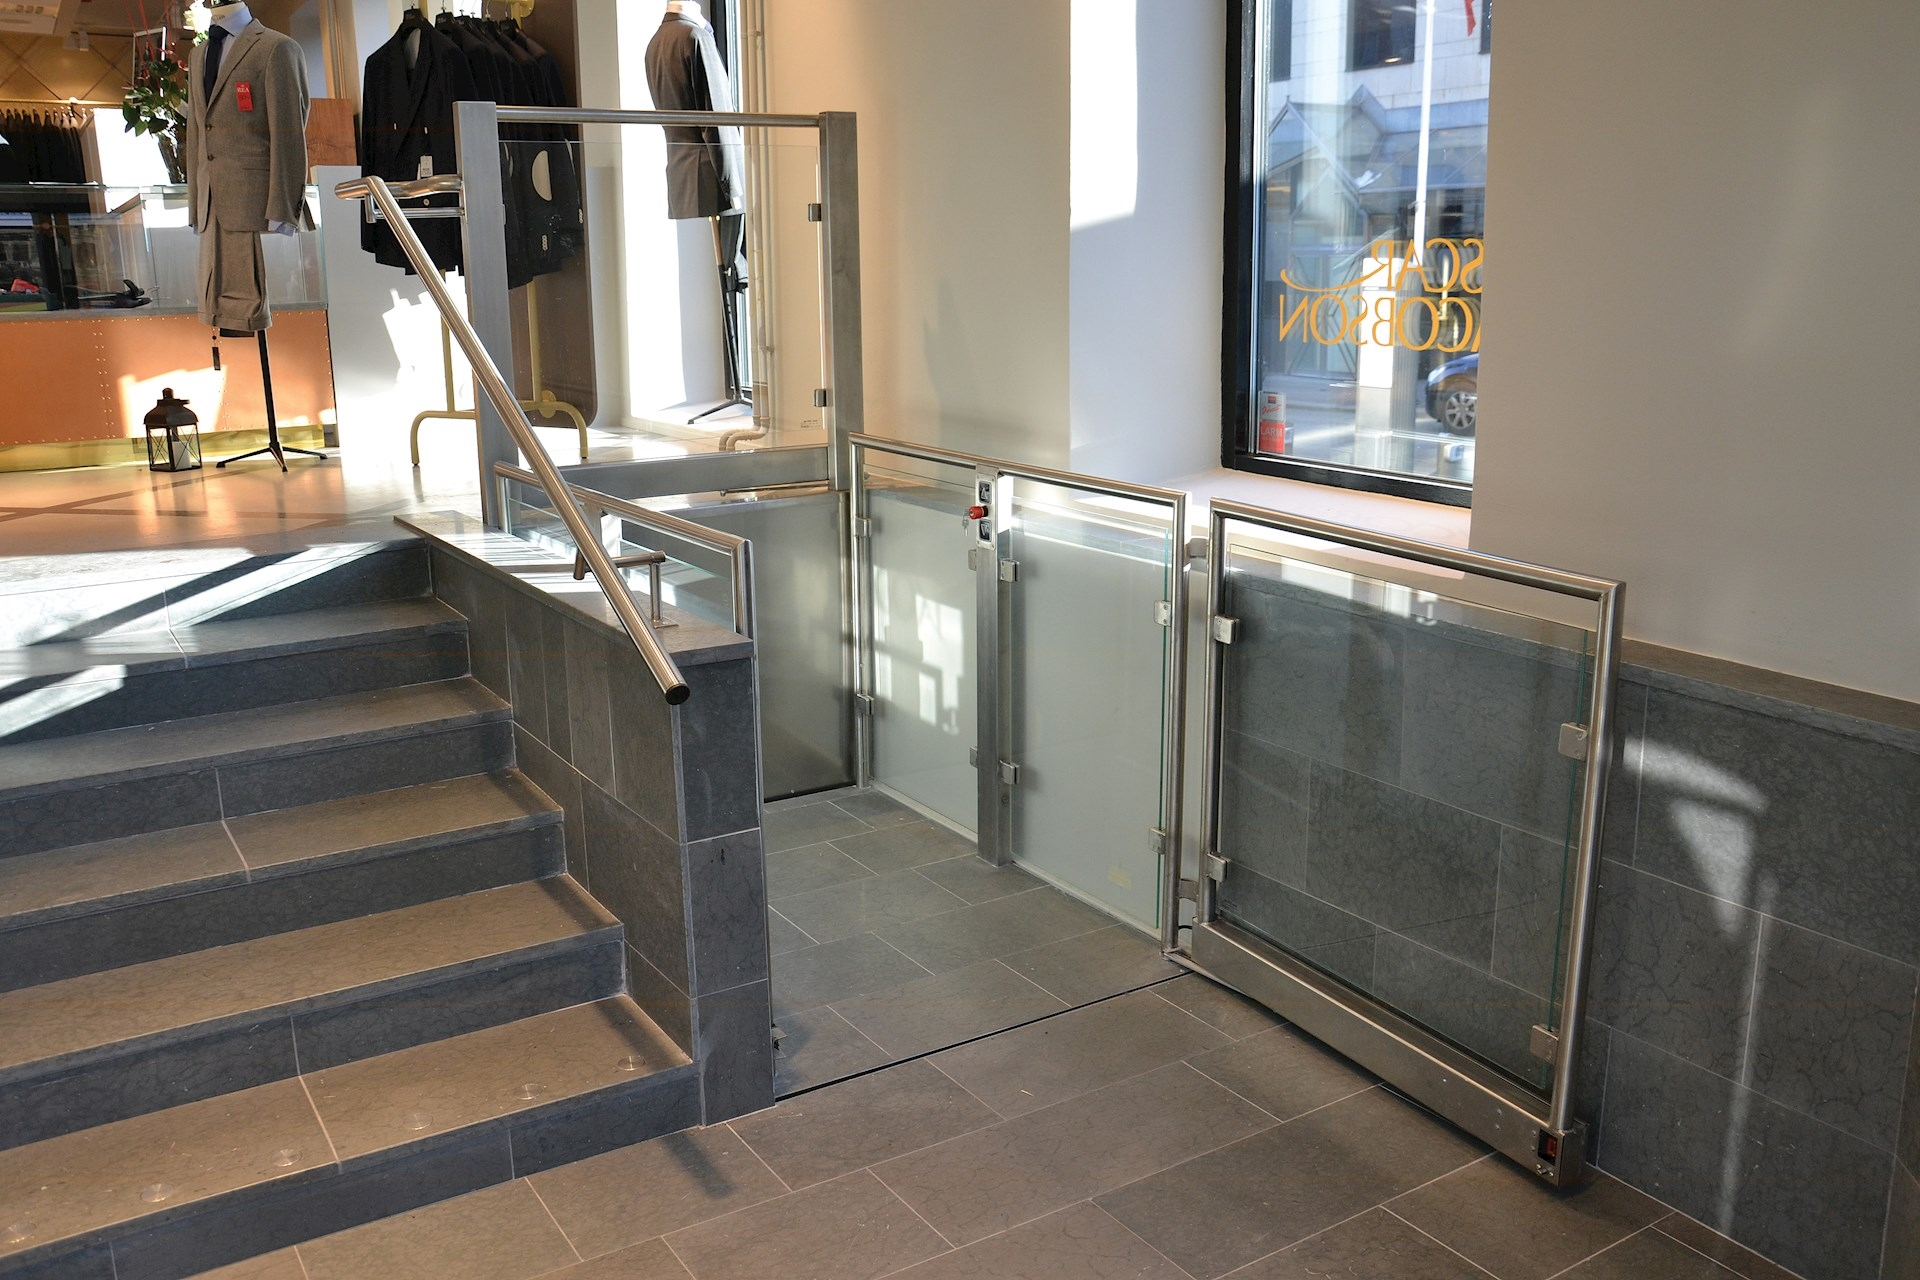 The Stepless SLP A platform lift is a customised model with upper and lower gates, as well as a high rail adapted to suit the setting.